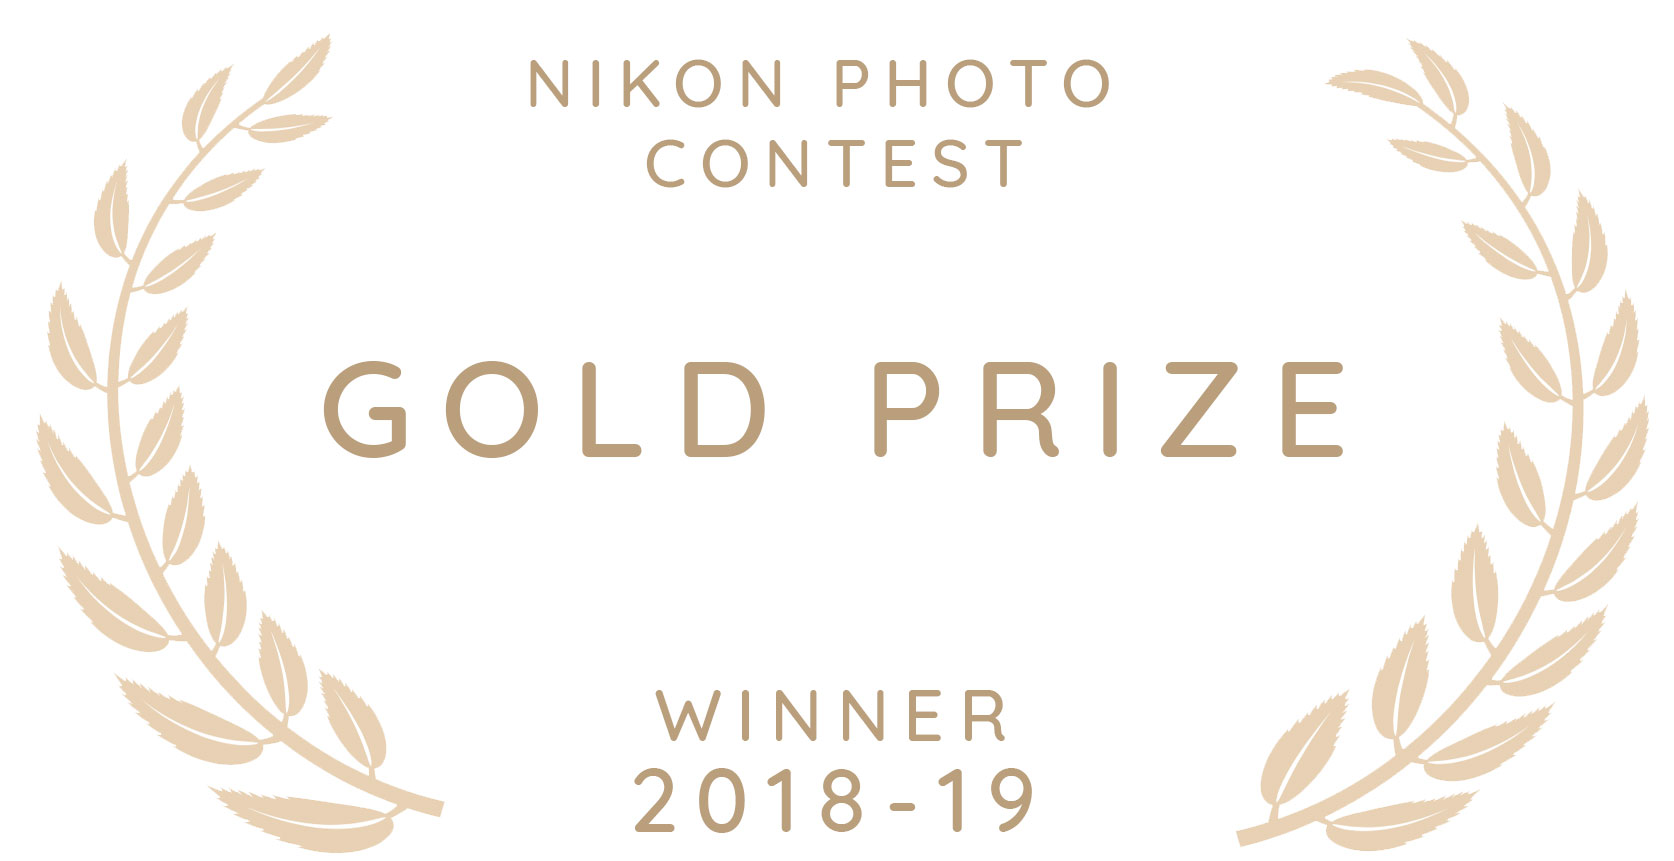 Nikon-photo-contest-award.jpg